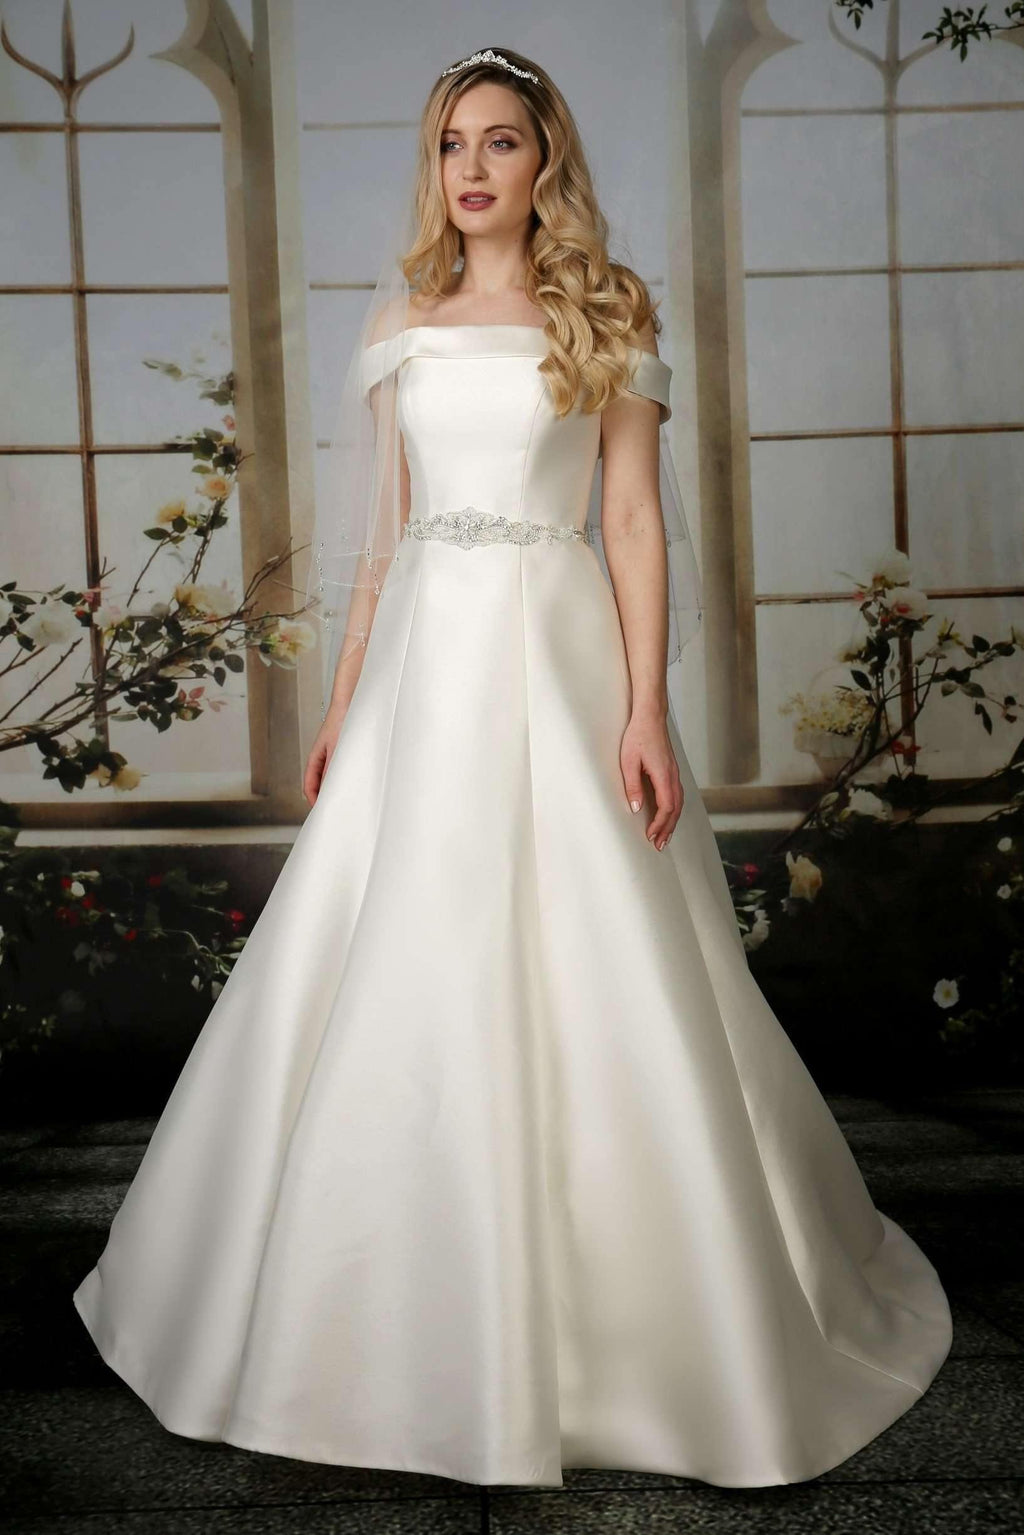 NIEVE COUTURE - Priscilla - Adore Bridal and Occasion Wear